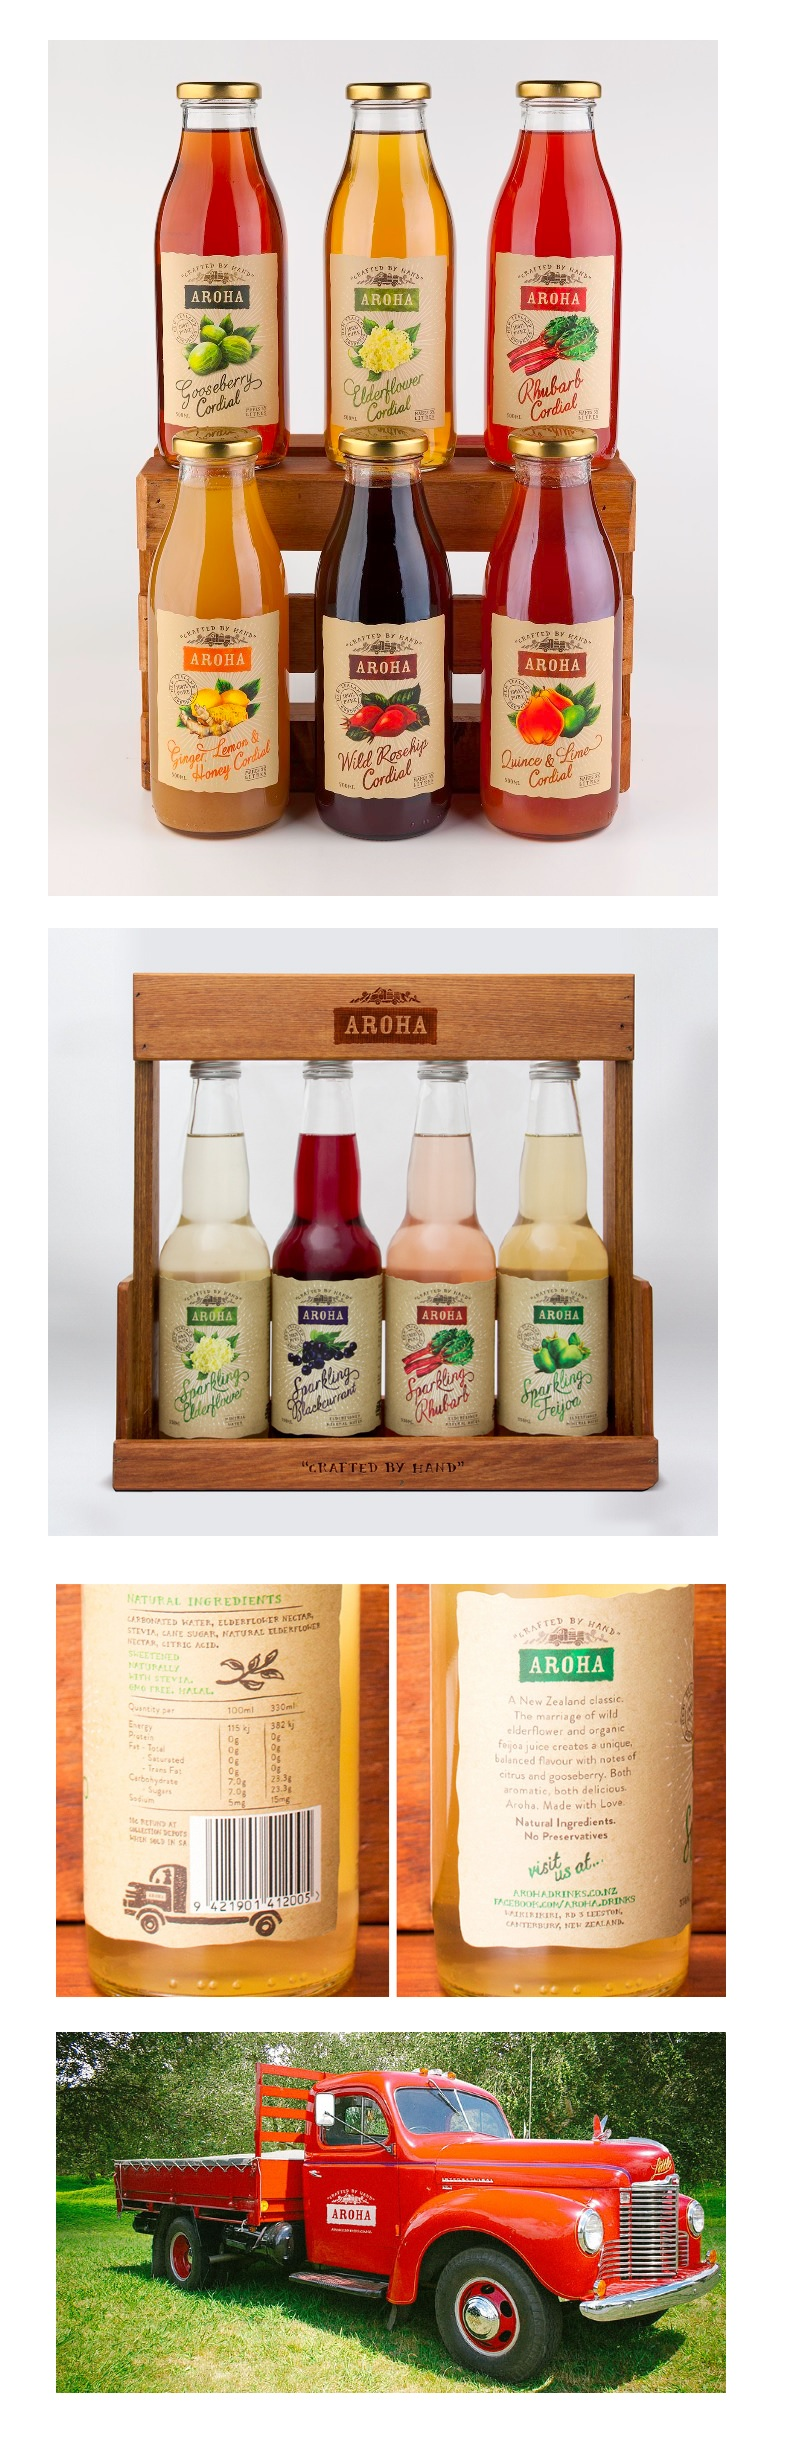 Packaging spotlight aroha juice redesign trendmonitor for Aroha new zealand cuisine